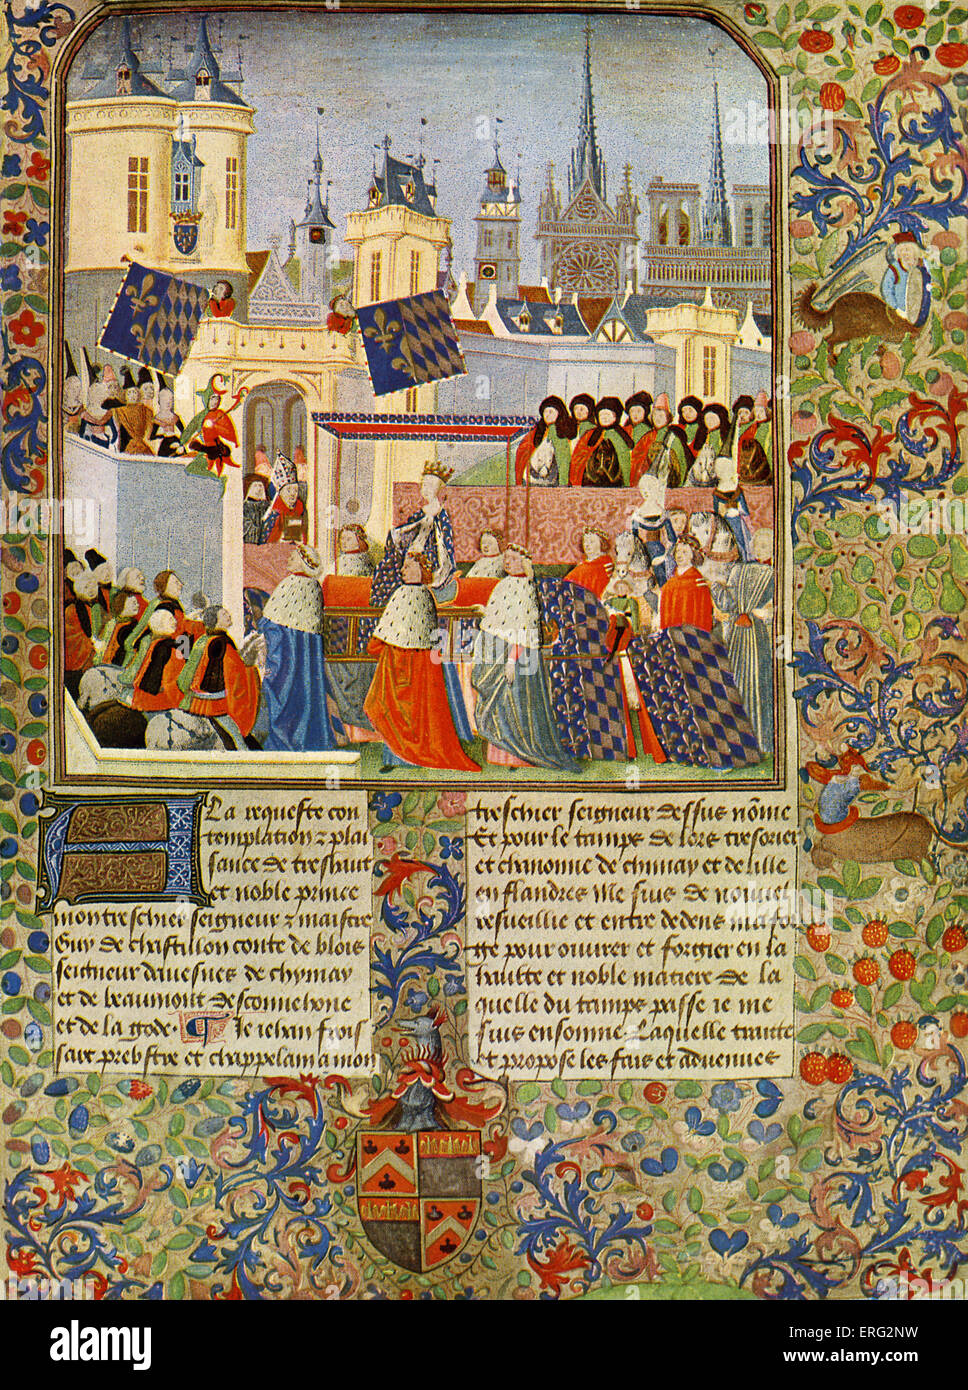 The entry of Queen Isabel into Paris in 1389, from Froissart's Chronicles by Jean Froissart. JF: chronicler - Stock Image